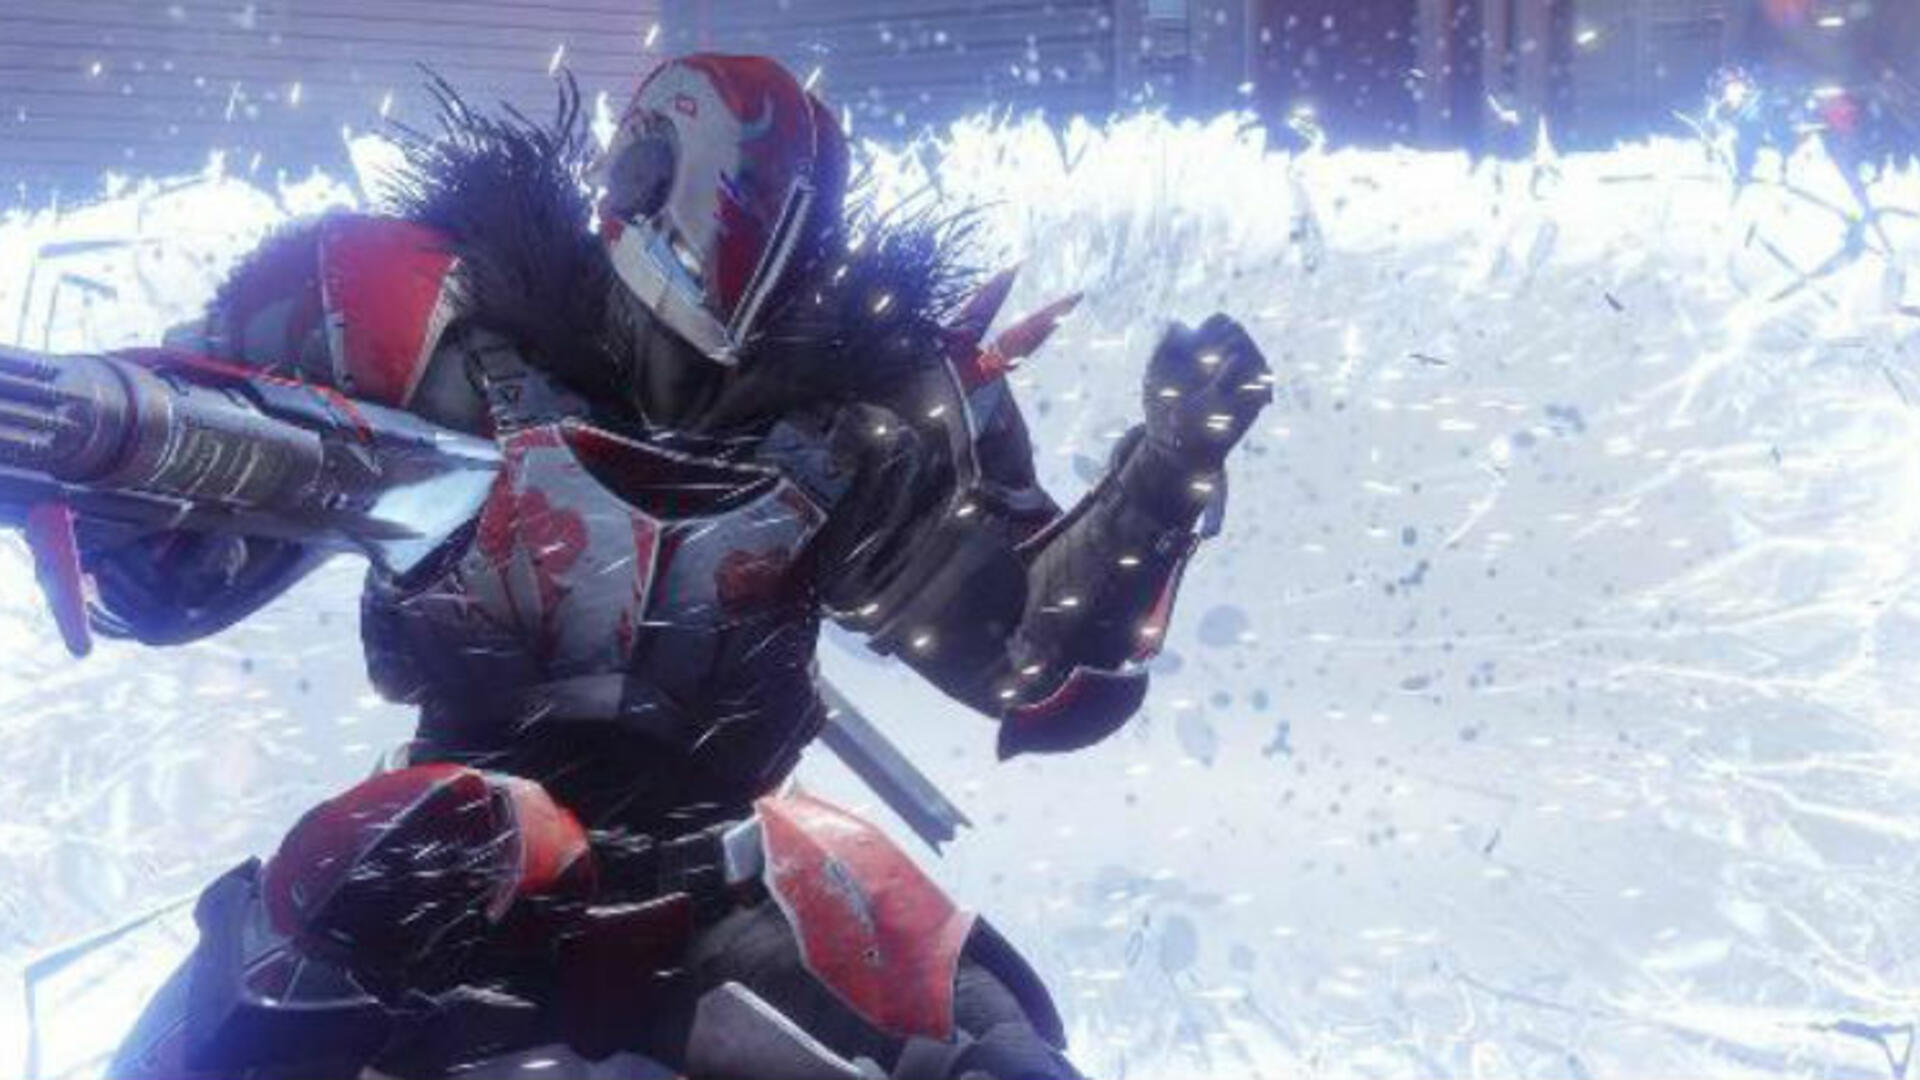 Destiny 2's Iron Banner Event Has a Cool Overwatch Easter Egg